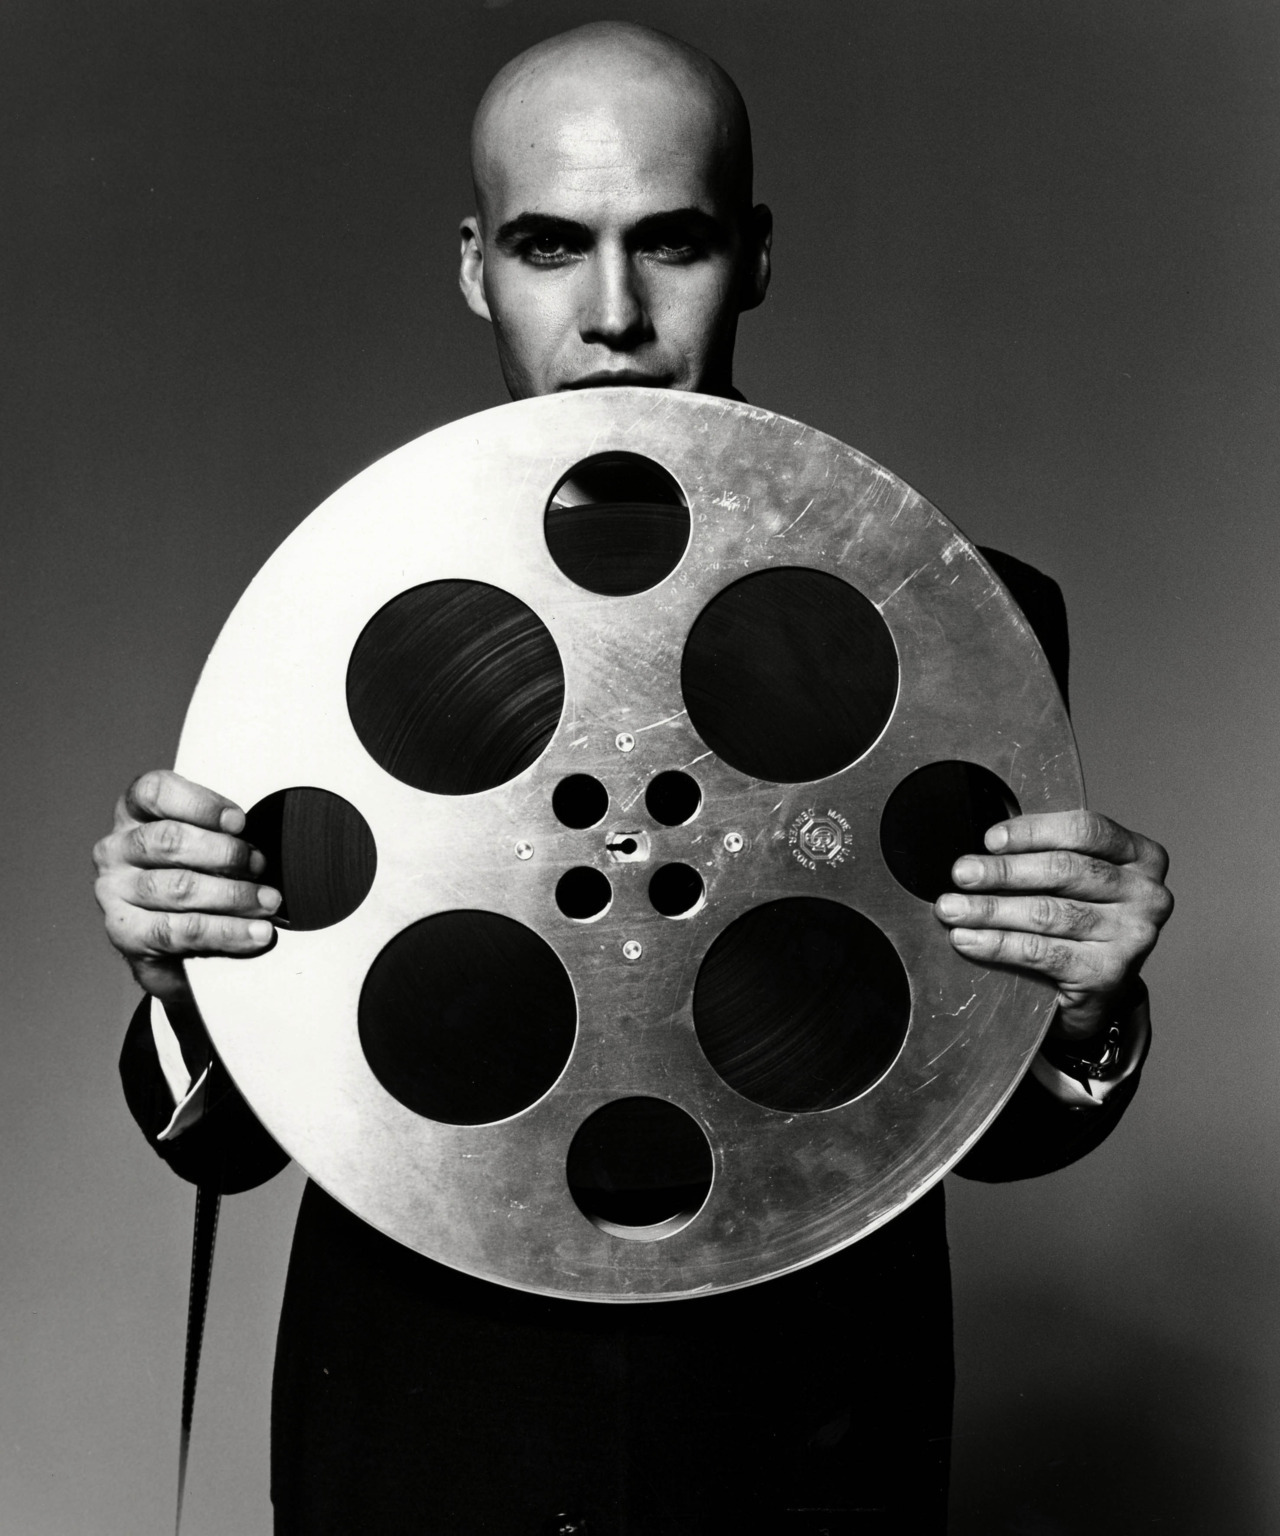 Billy Zane by Michel Comte